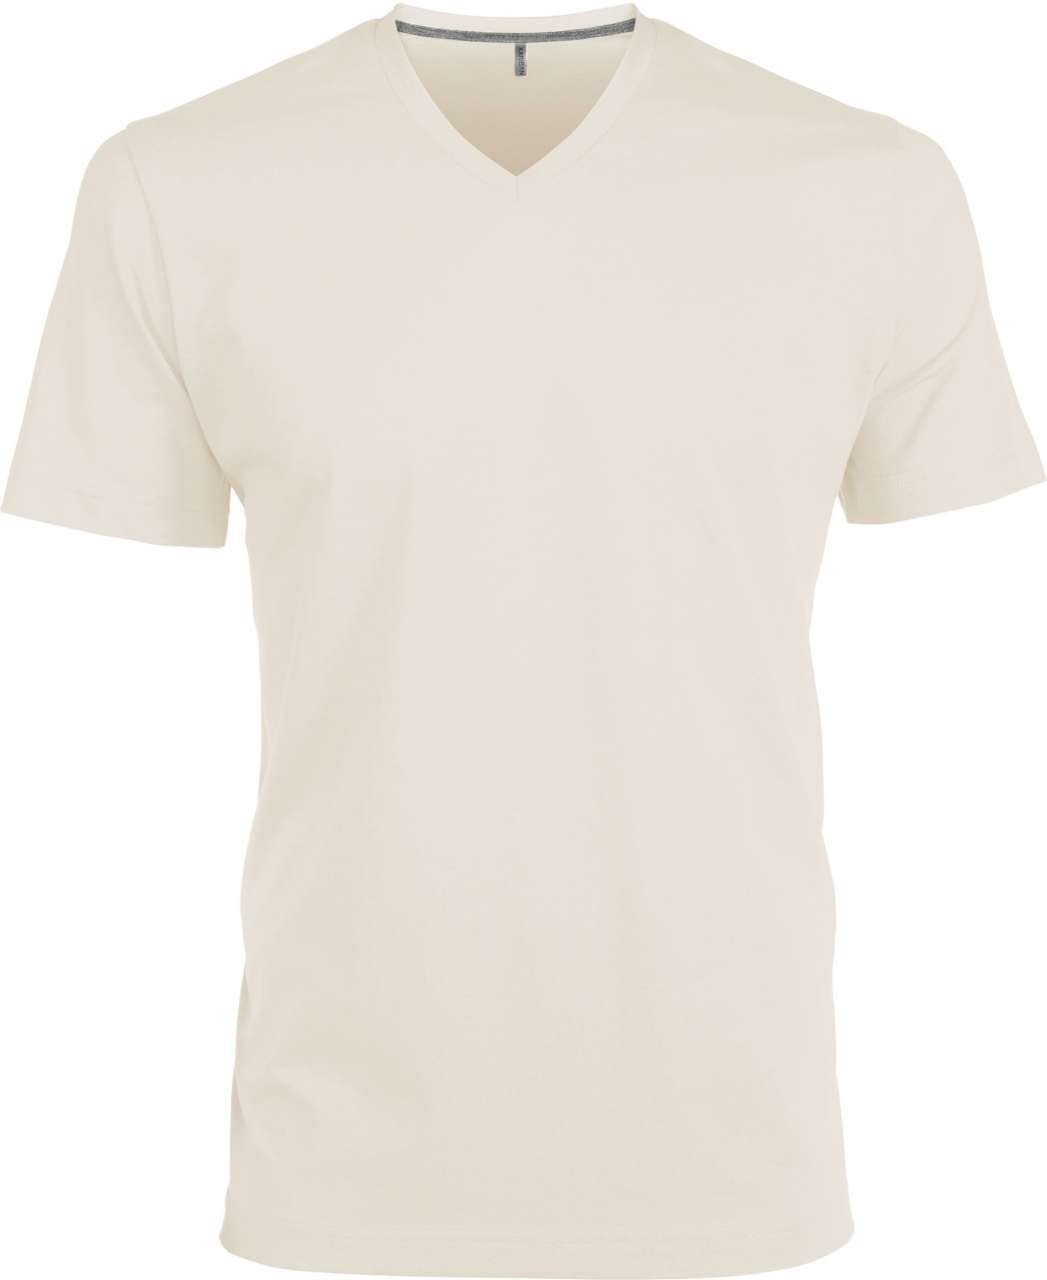 37161a9fad Kariban V-neck T-shirt, Light Sand, L (T-shirt, 90-100% cotton ...